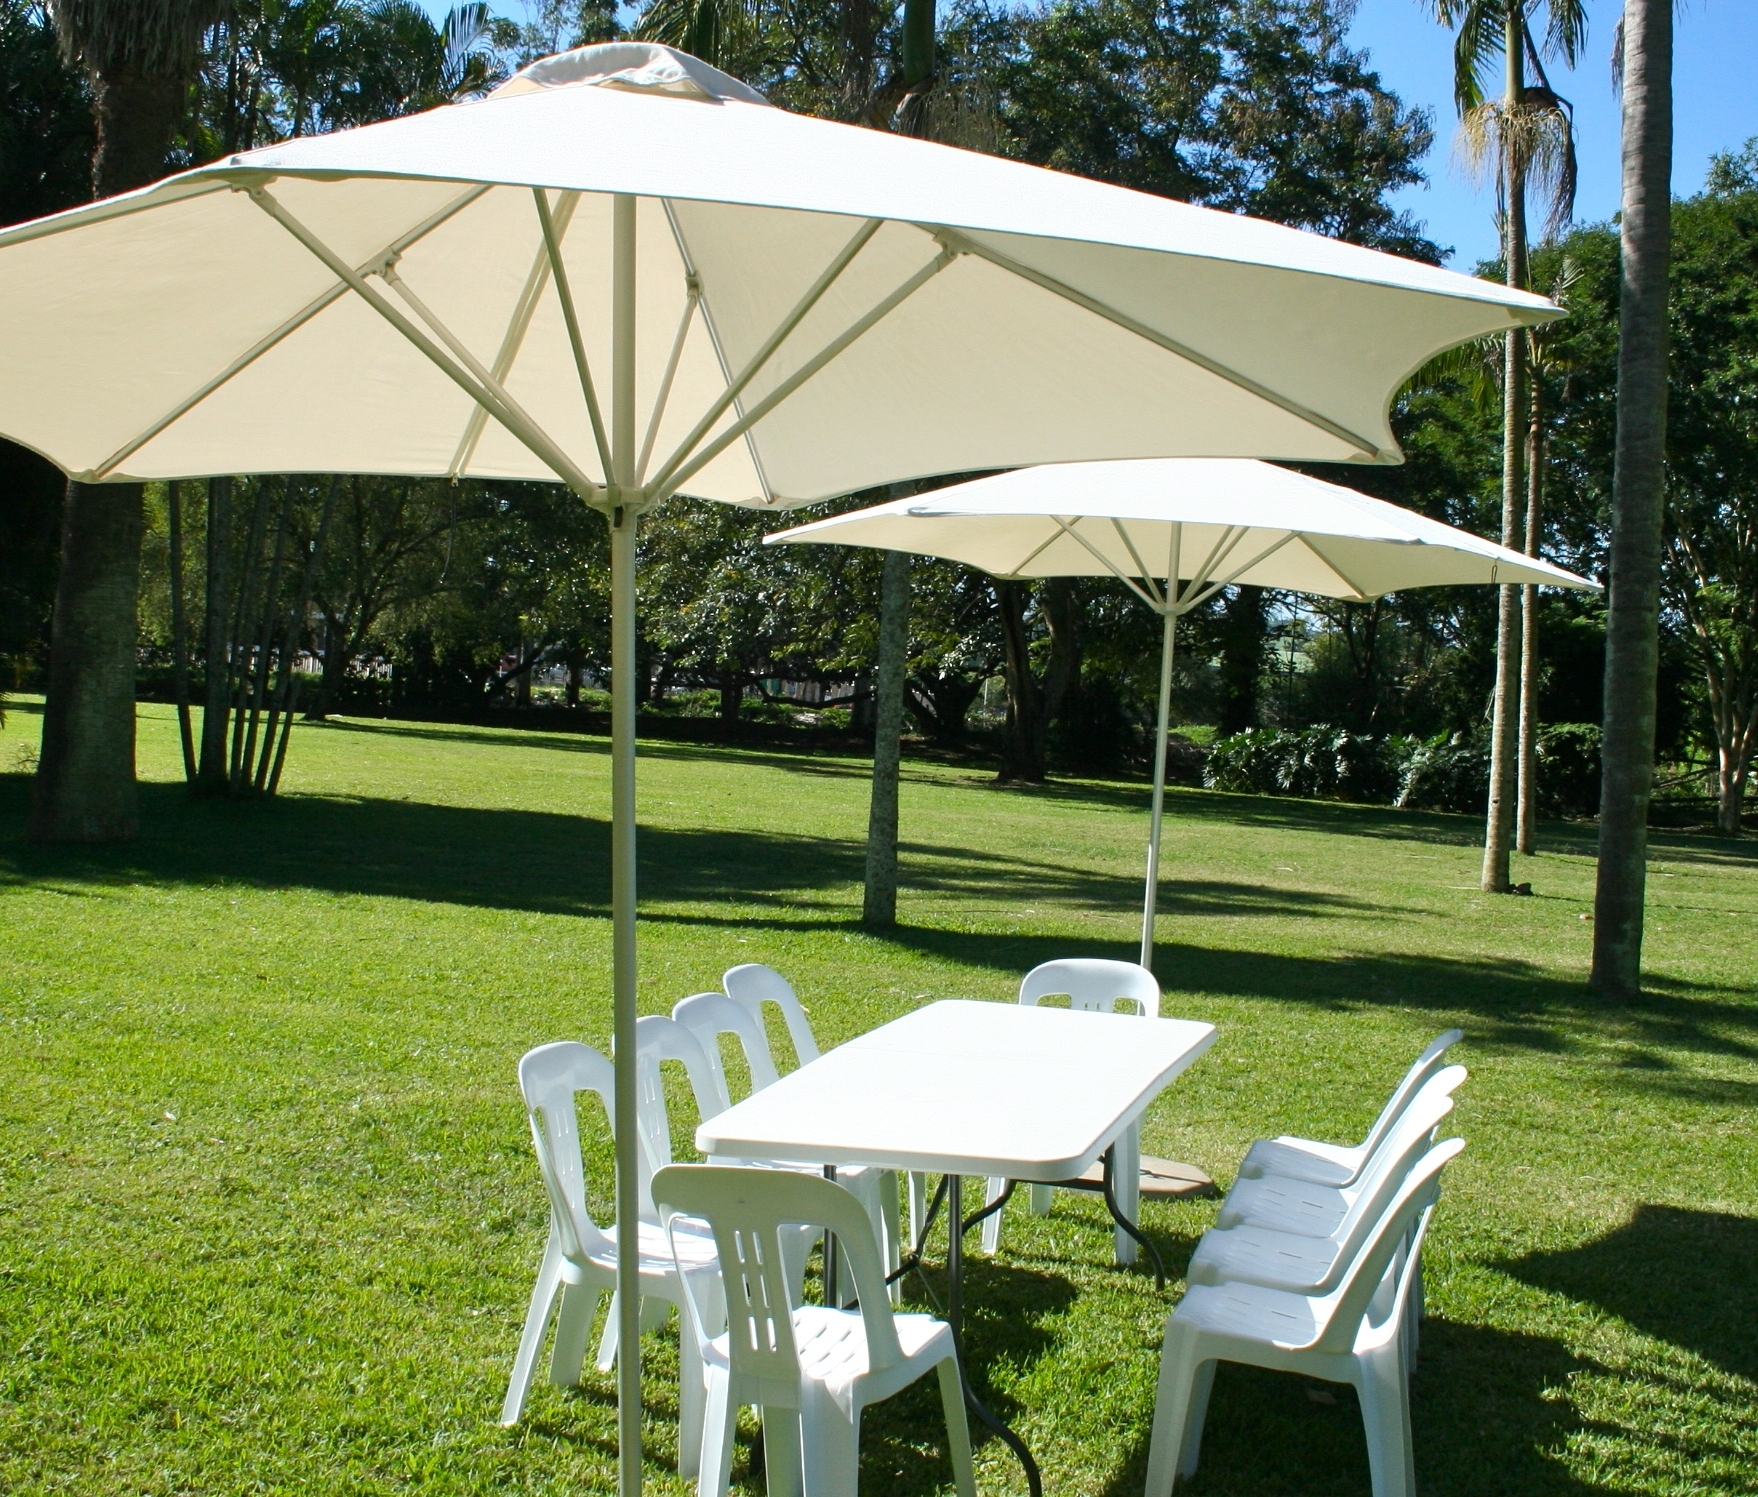 Outdoor Patio Umbrellas With Regard To Well Liked Outdoor Patio Umbrella Rental Umbrella Hire (View 13 of 20)